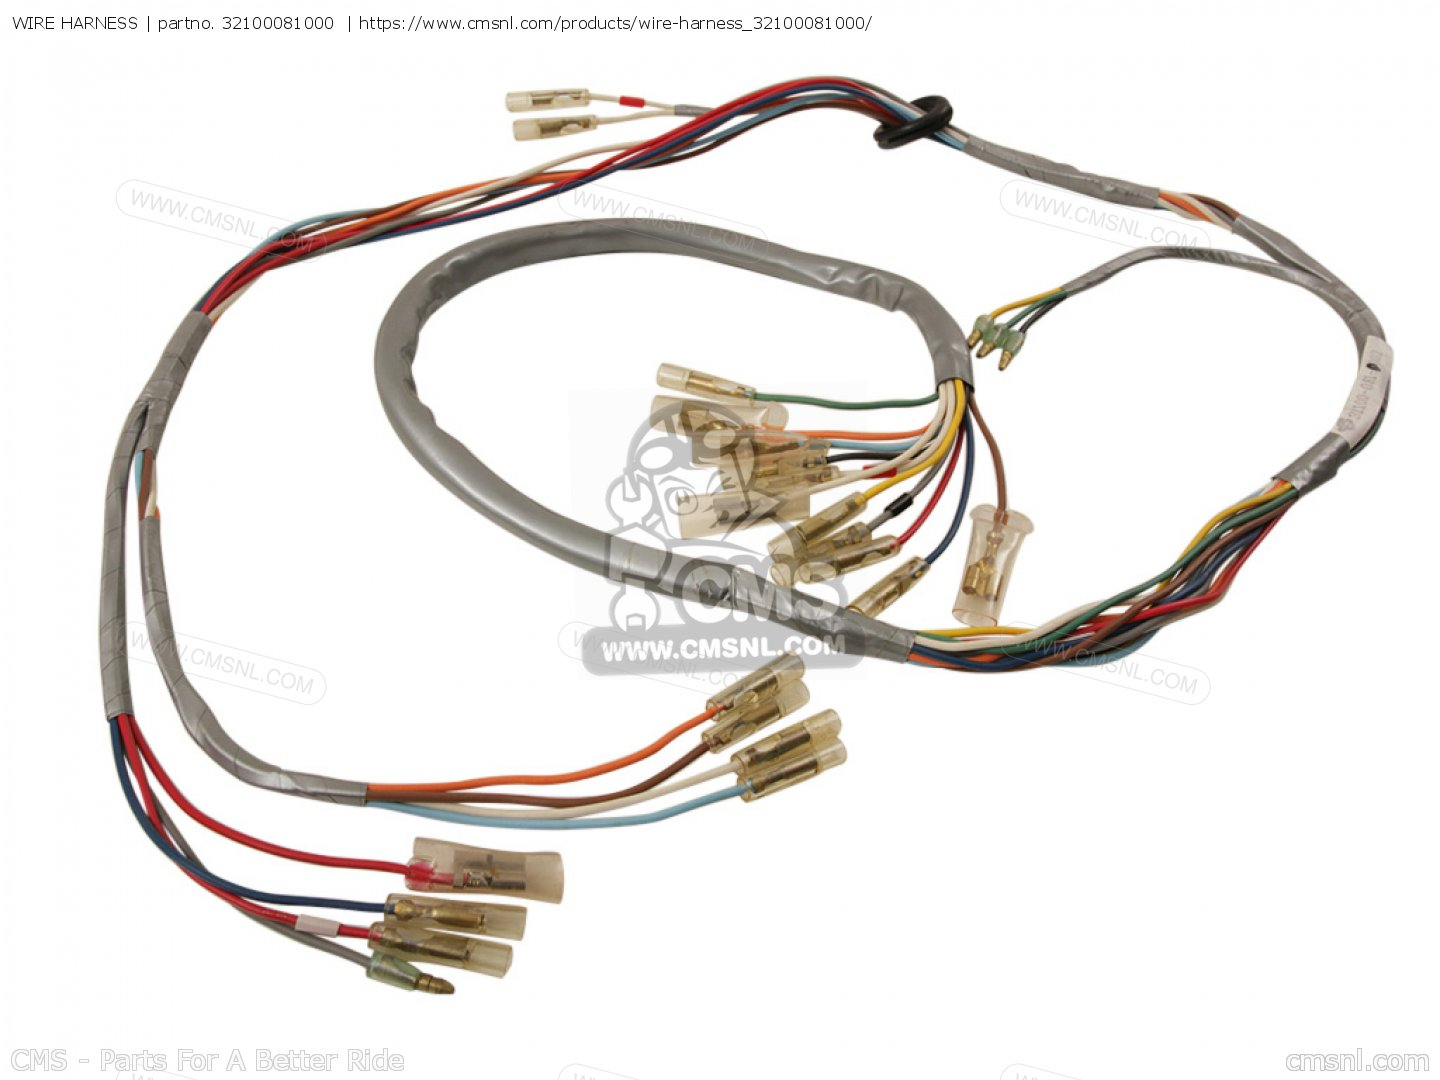 Wire Harness For Pc50k1 Order At Cmsnl Product Photo